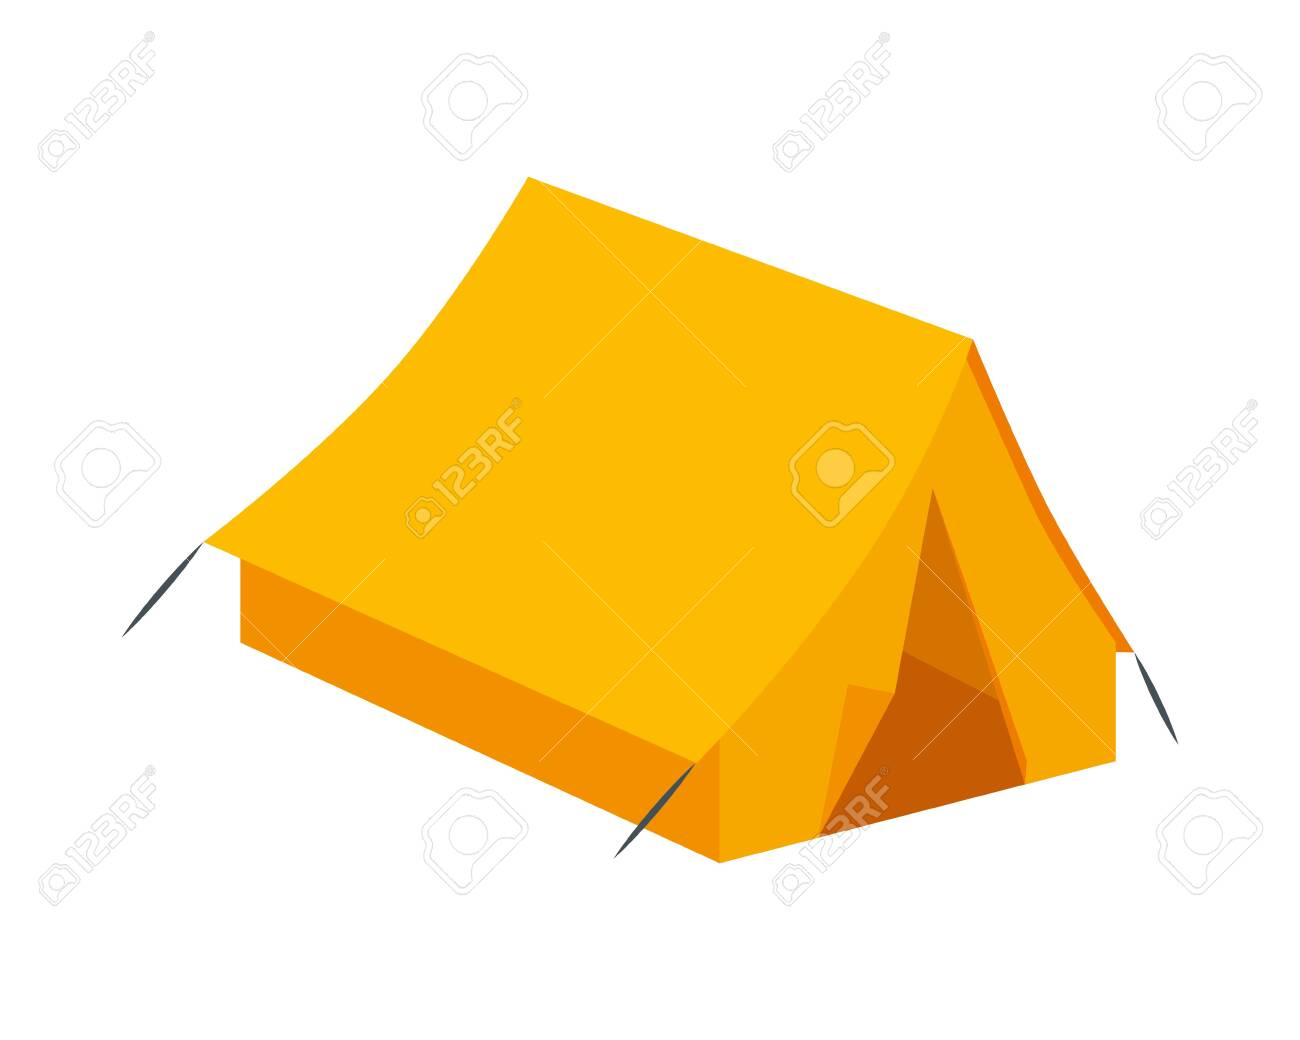 tent camping accessory isolated icon vector illustration design - 124940493